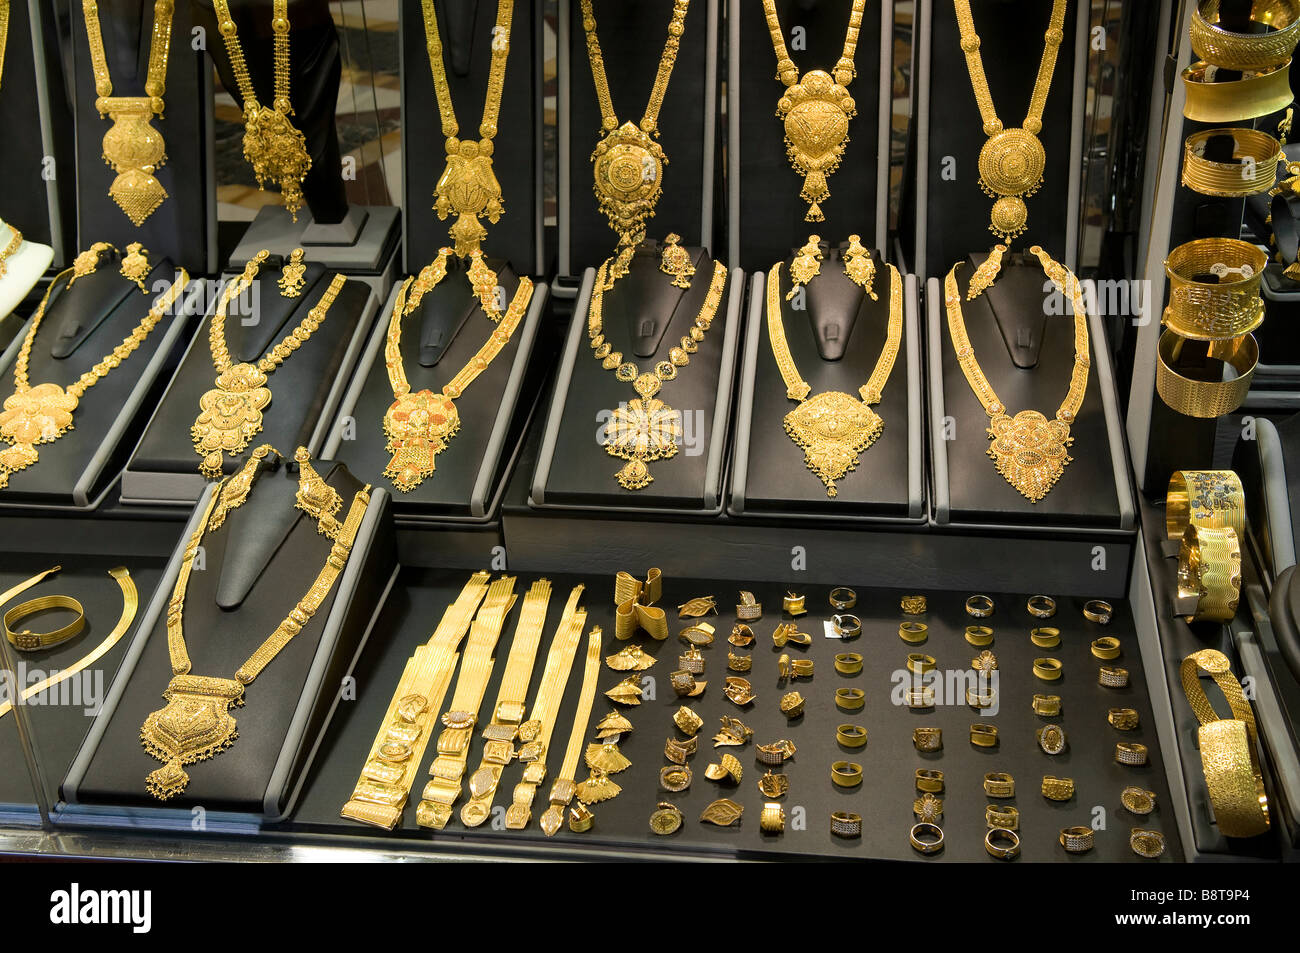 Necklace Display In Gold Souk Shop Window Dubai Uae